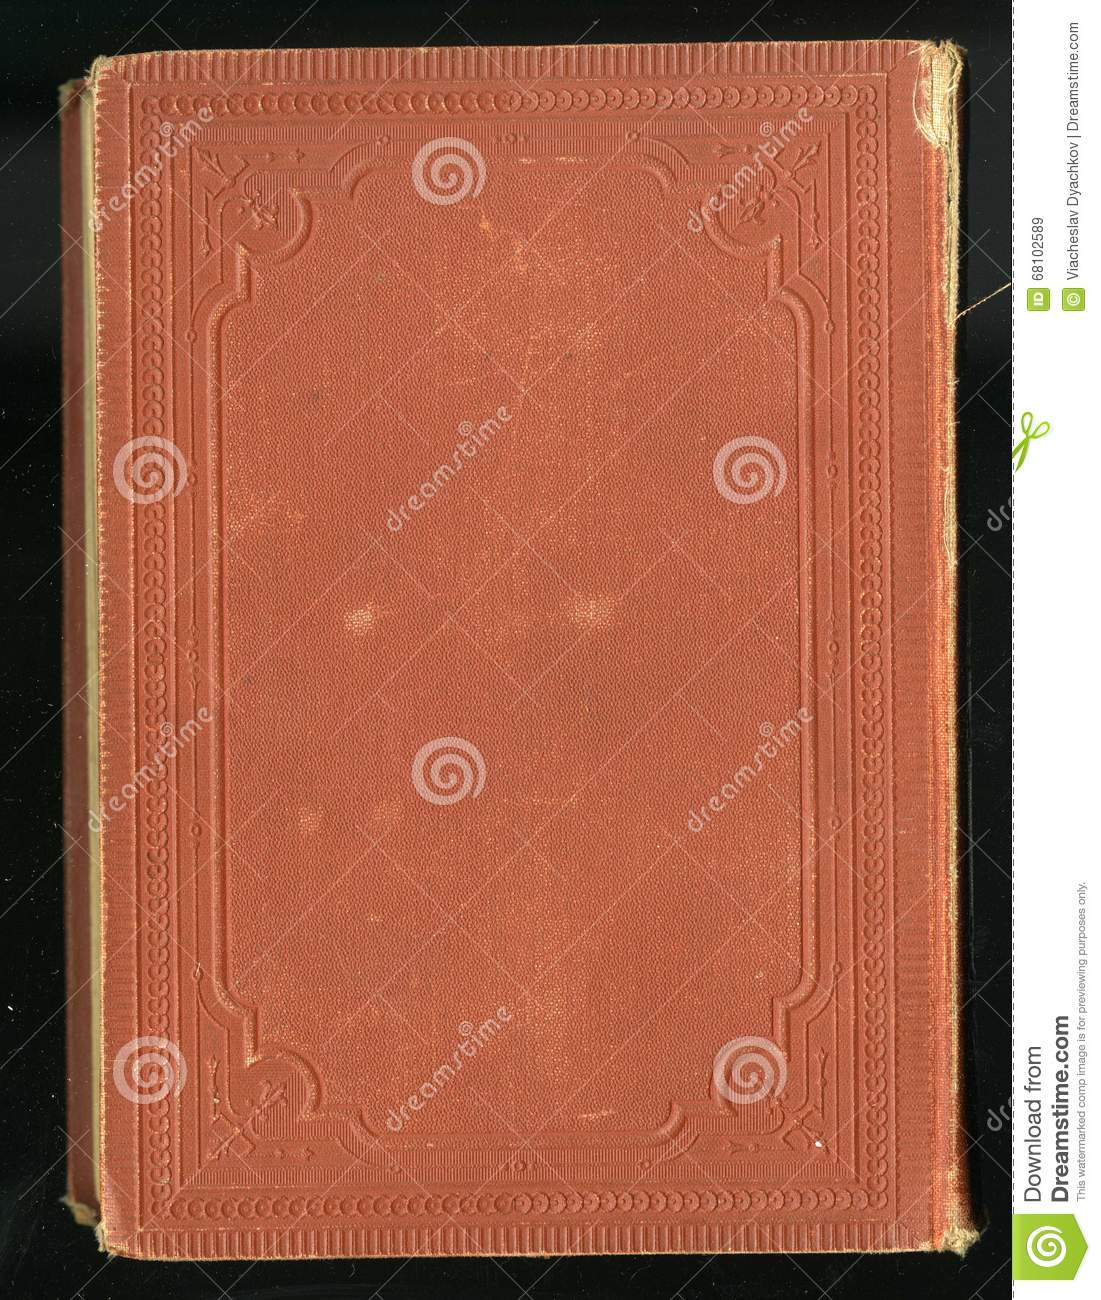 Vintage Style Book Cover : Retro style antique vintage diary journal book cover